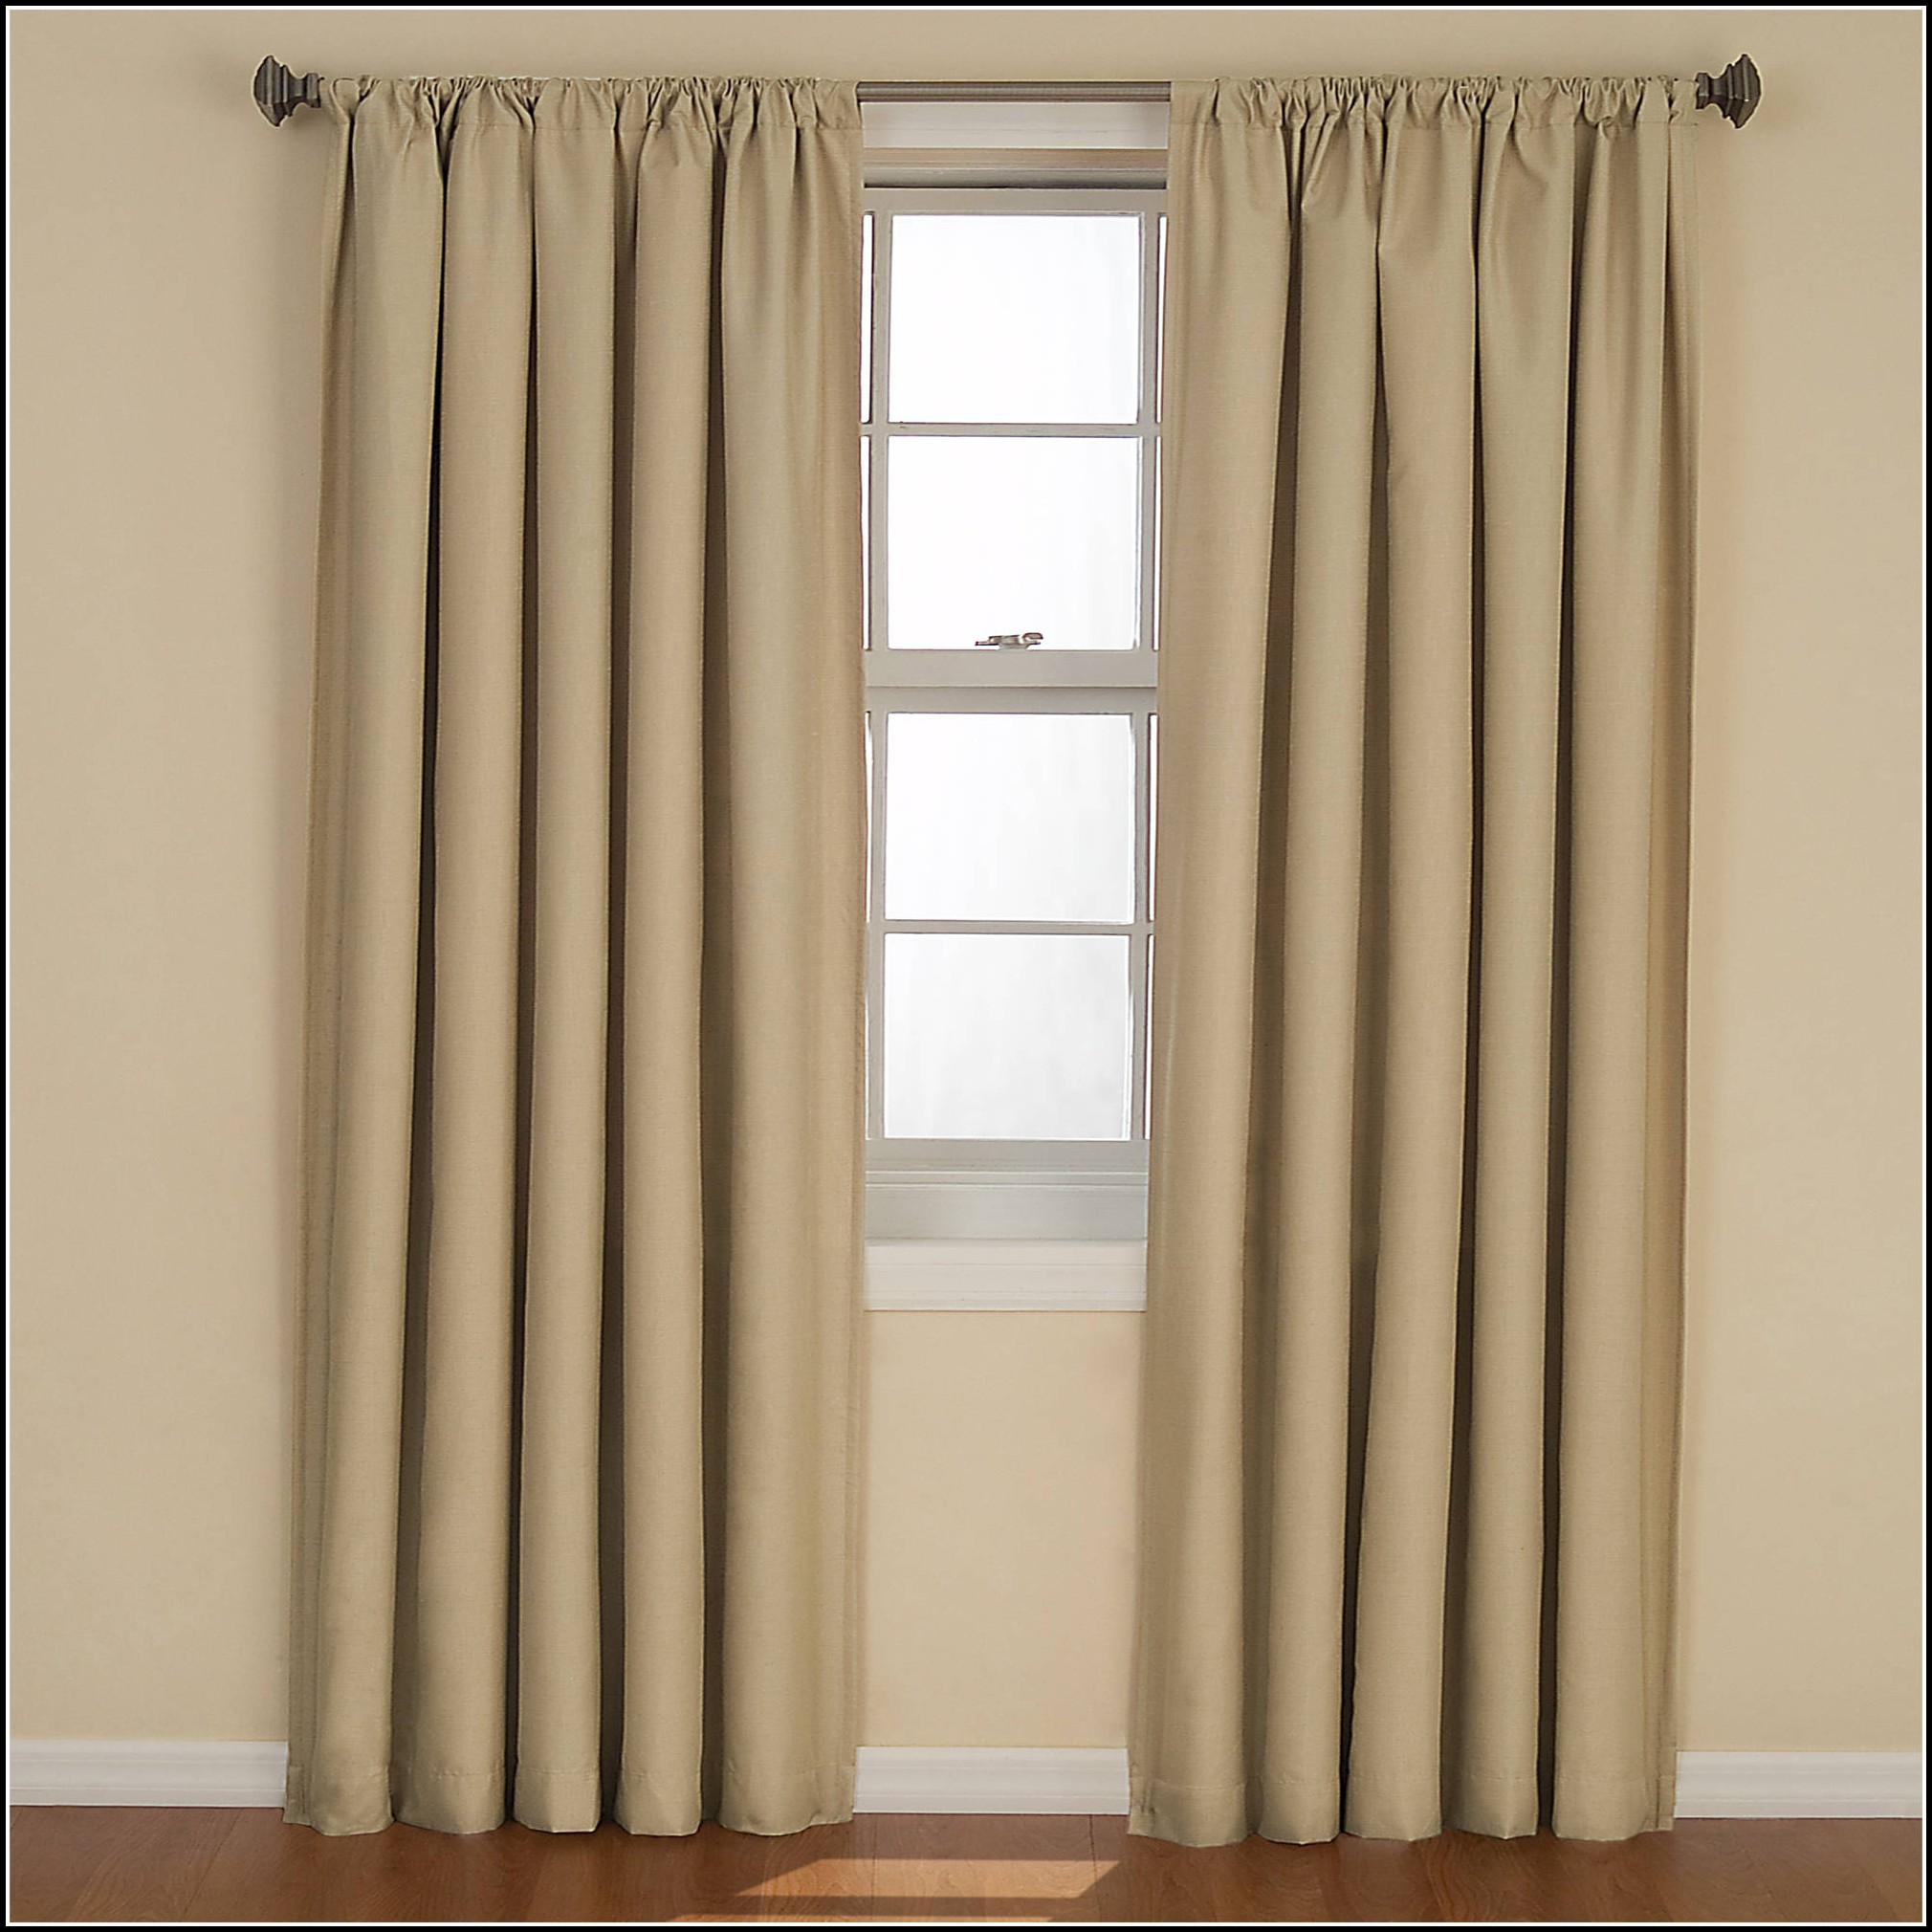 Eclipse Blackout Curtains Walmart